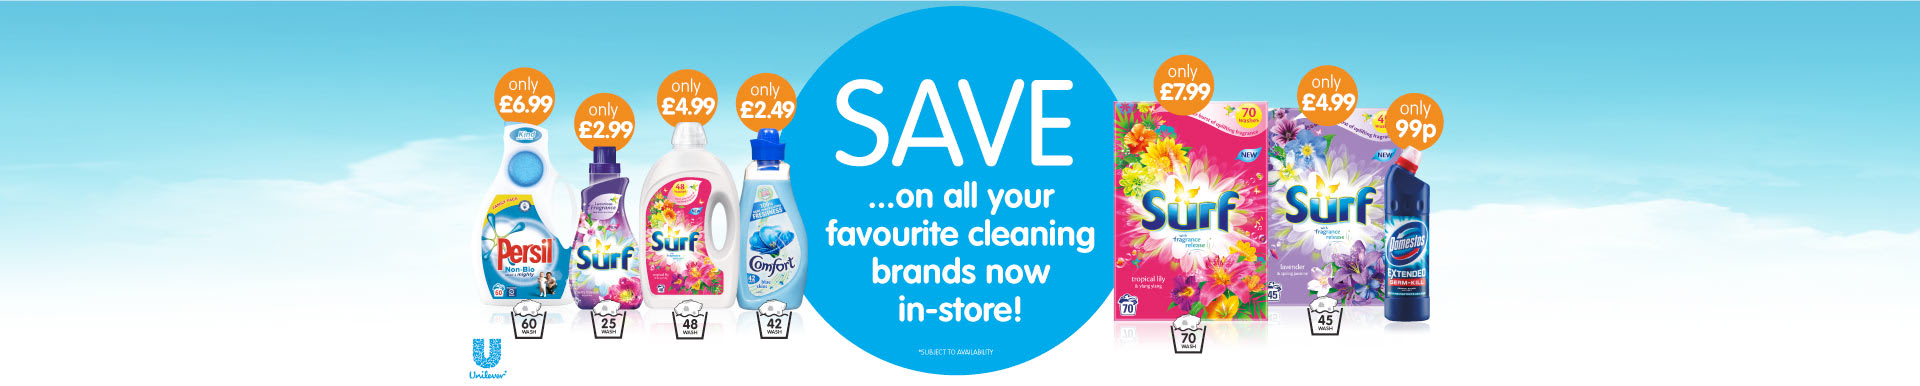 Save on all your favourite Unilever Cleaning products at B&M.